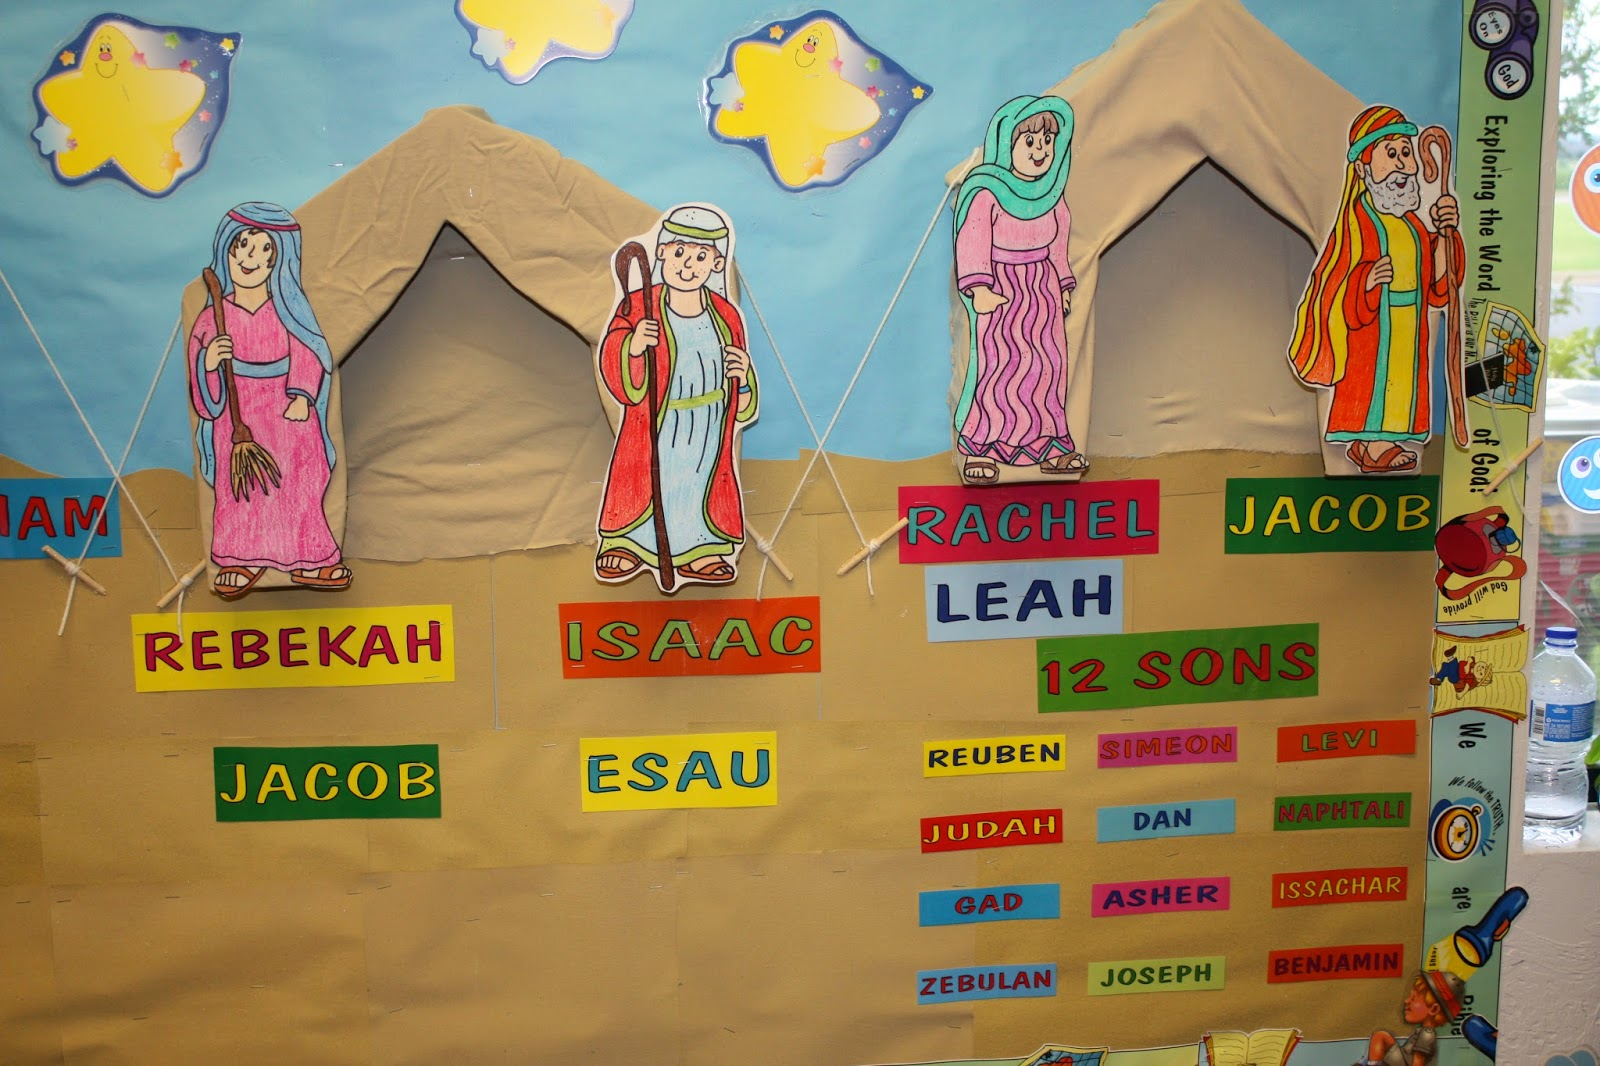 Abraham isaac and jacob clipart jpg royalty free library Hands On Bible Teacher: Abraham, Isaac and Jacob Bulletin Board ... jpg royalty free library